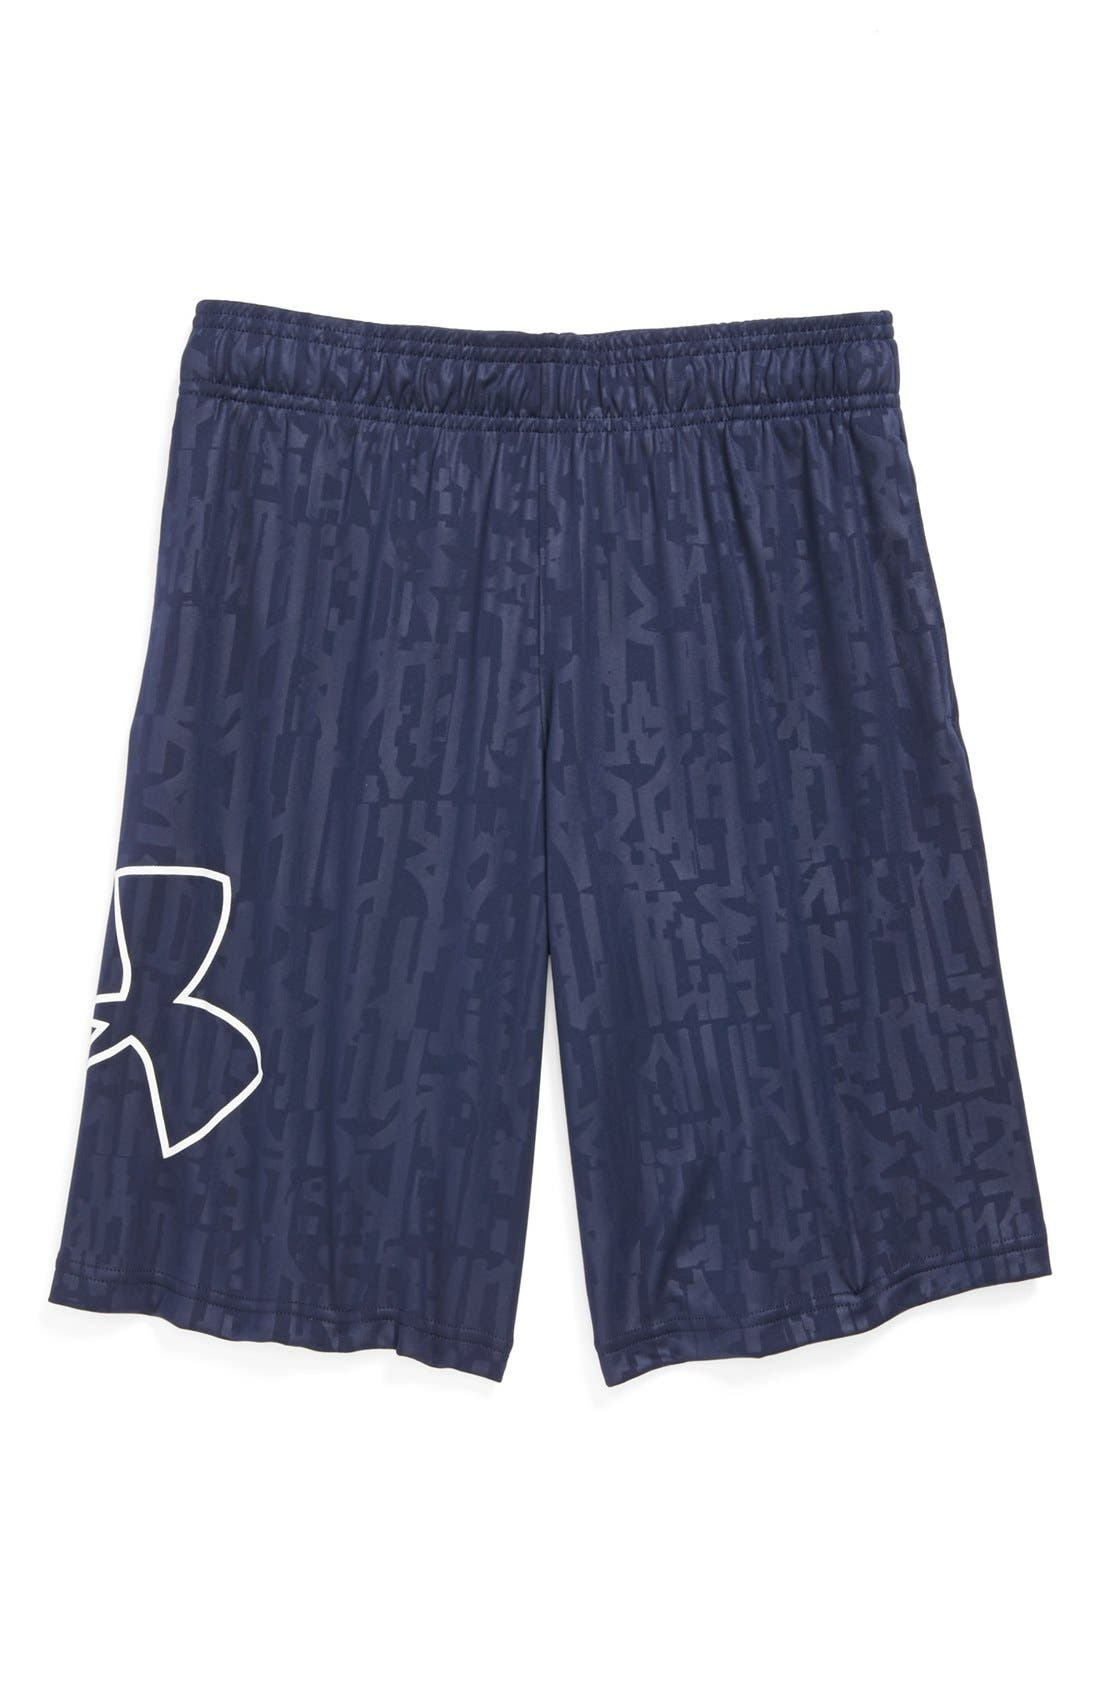 Alternate Image 1 Selected - Under Armour 'Allover Print' Shorts (Big Boys)